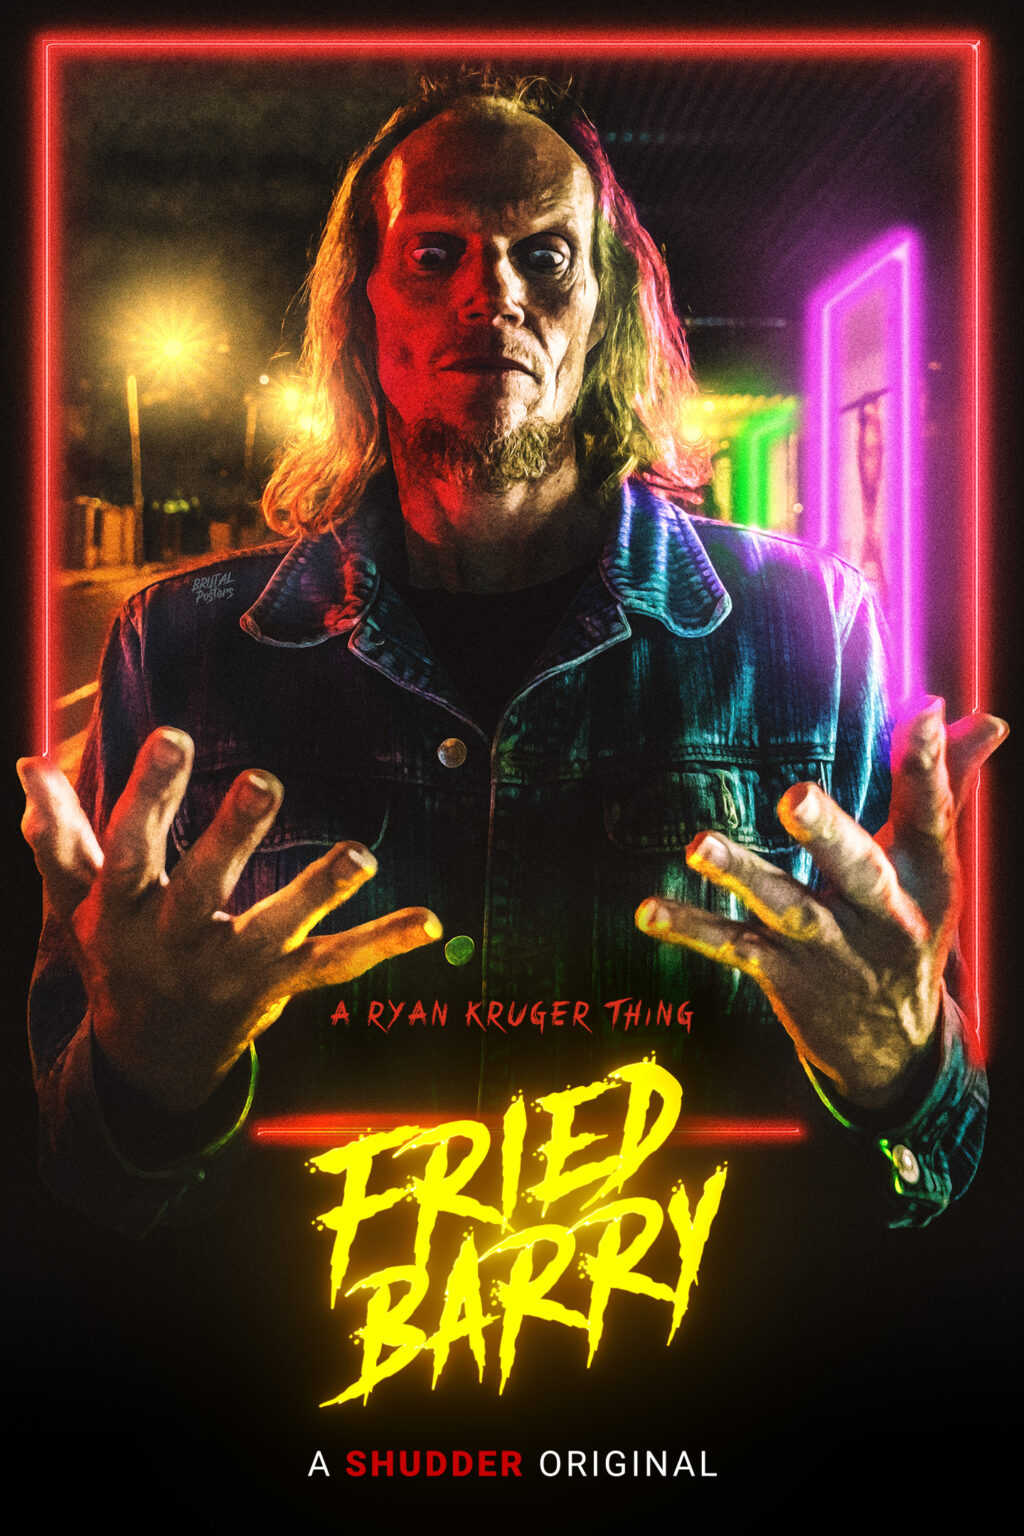 Fried Barry PosterArt 1440x2160 1024x1536 - Exclusive Interview: Ryan Kruger on FRIED BARRY & Short #MEOWTOO